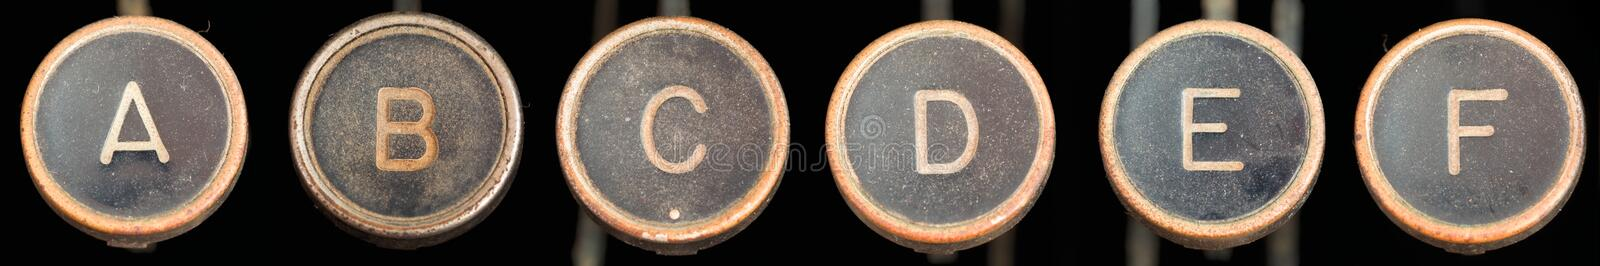 Old Typewriter Keys A-F. Covered in dirt and grime - A,B,C,D,E,F - 6 merged images stock photos